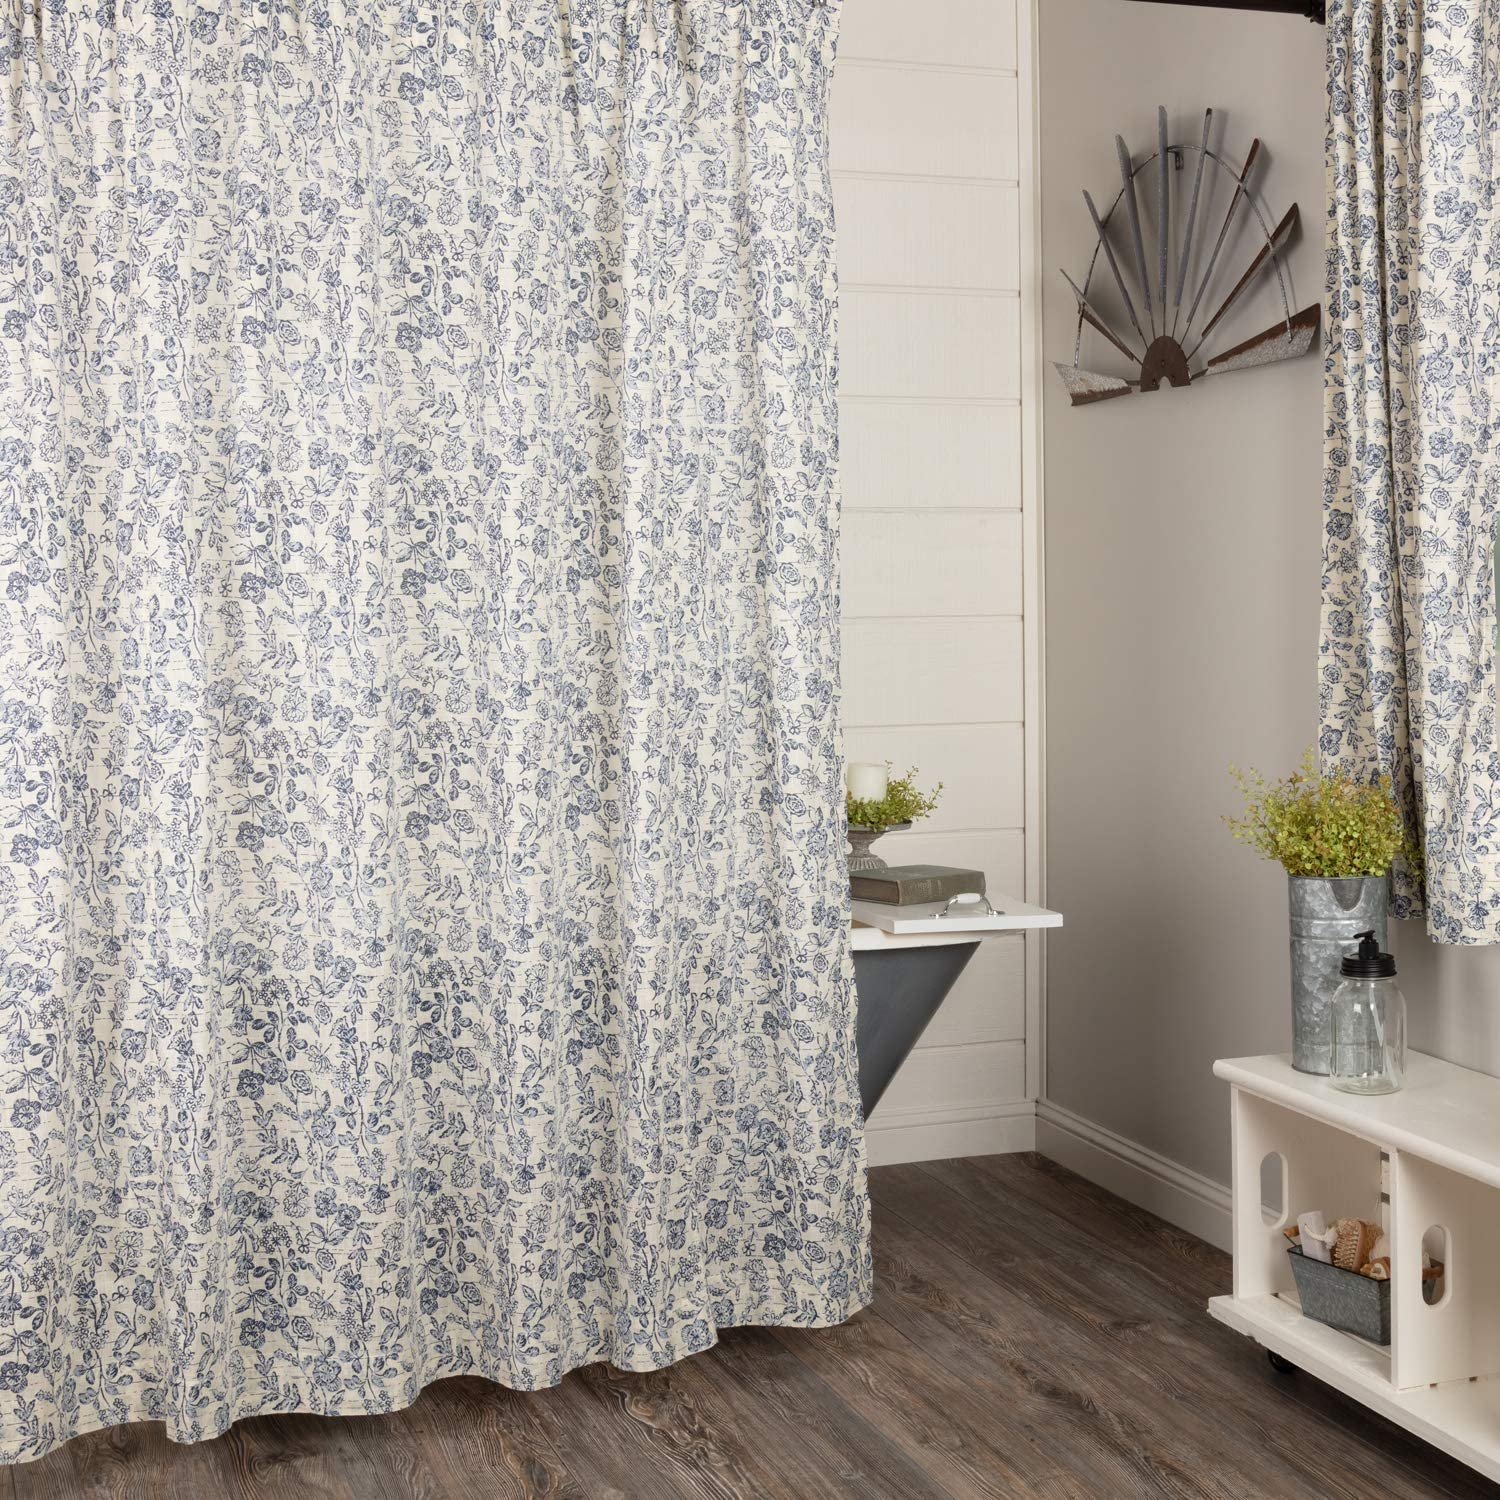 Piper Classics Doylestown Blue Floral Shower Curtain, 72